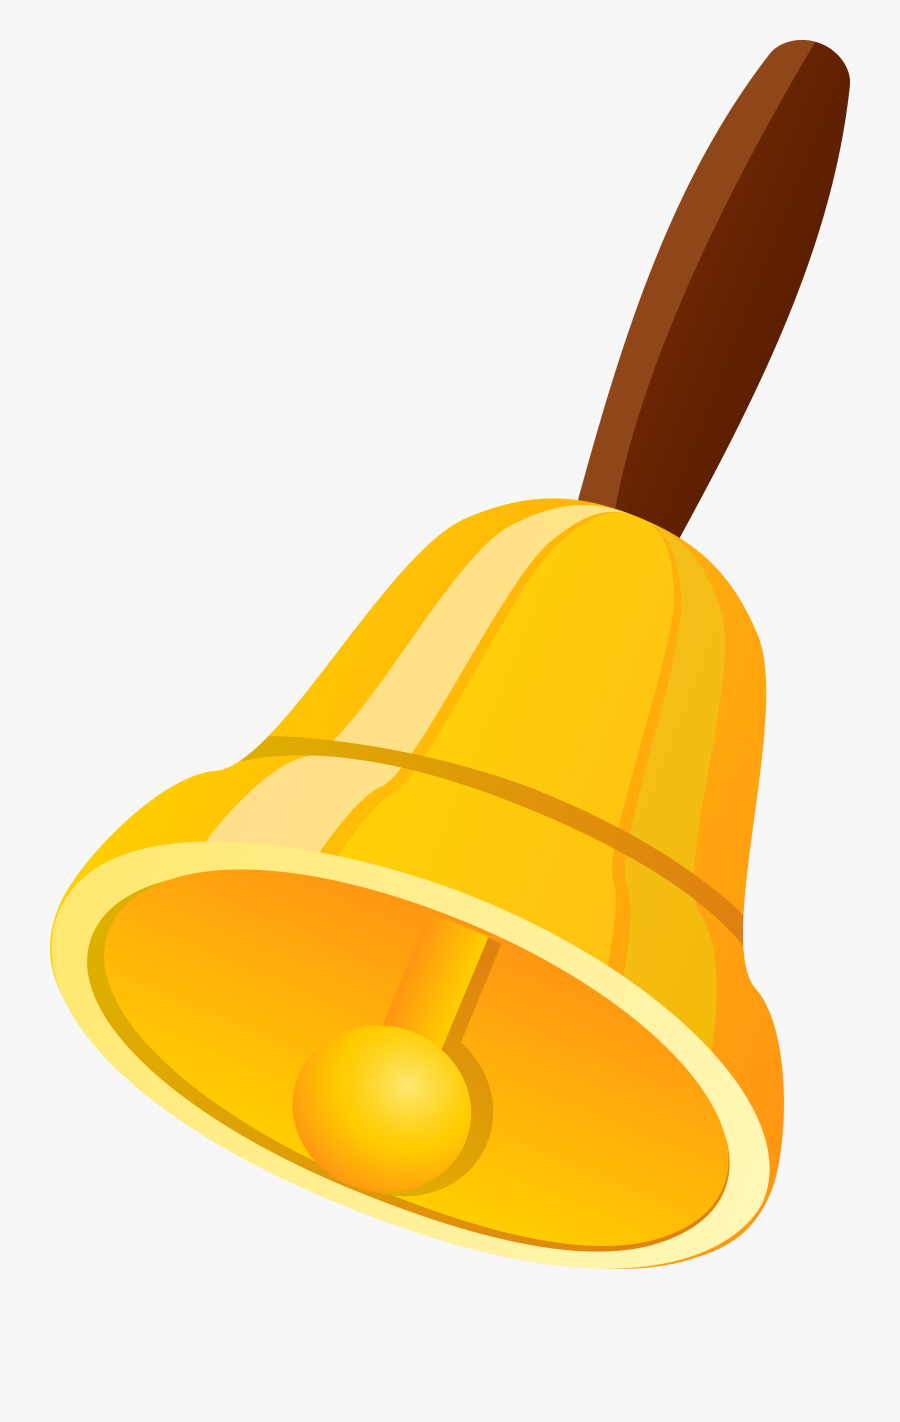 Transparent Hand Bell Clipart.